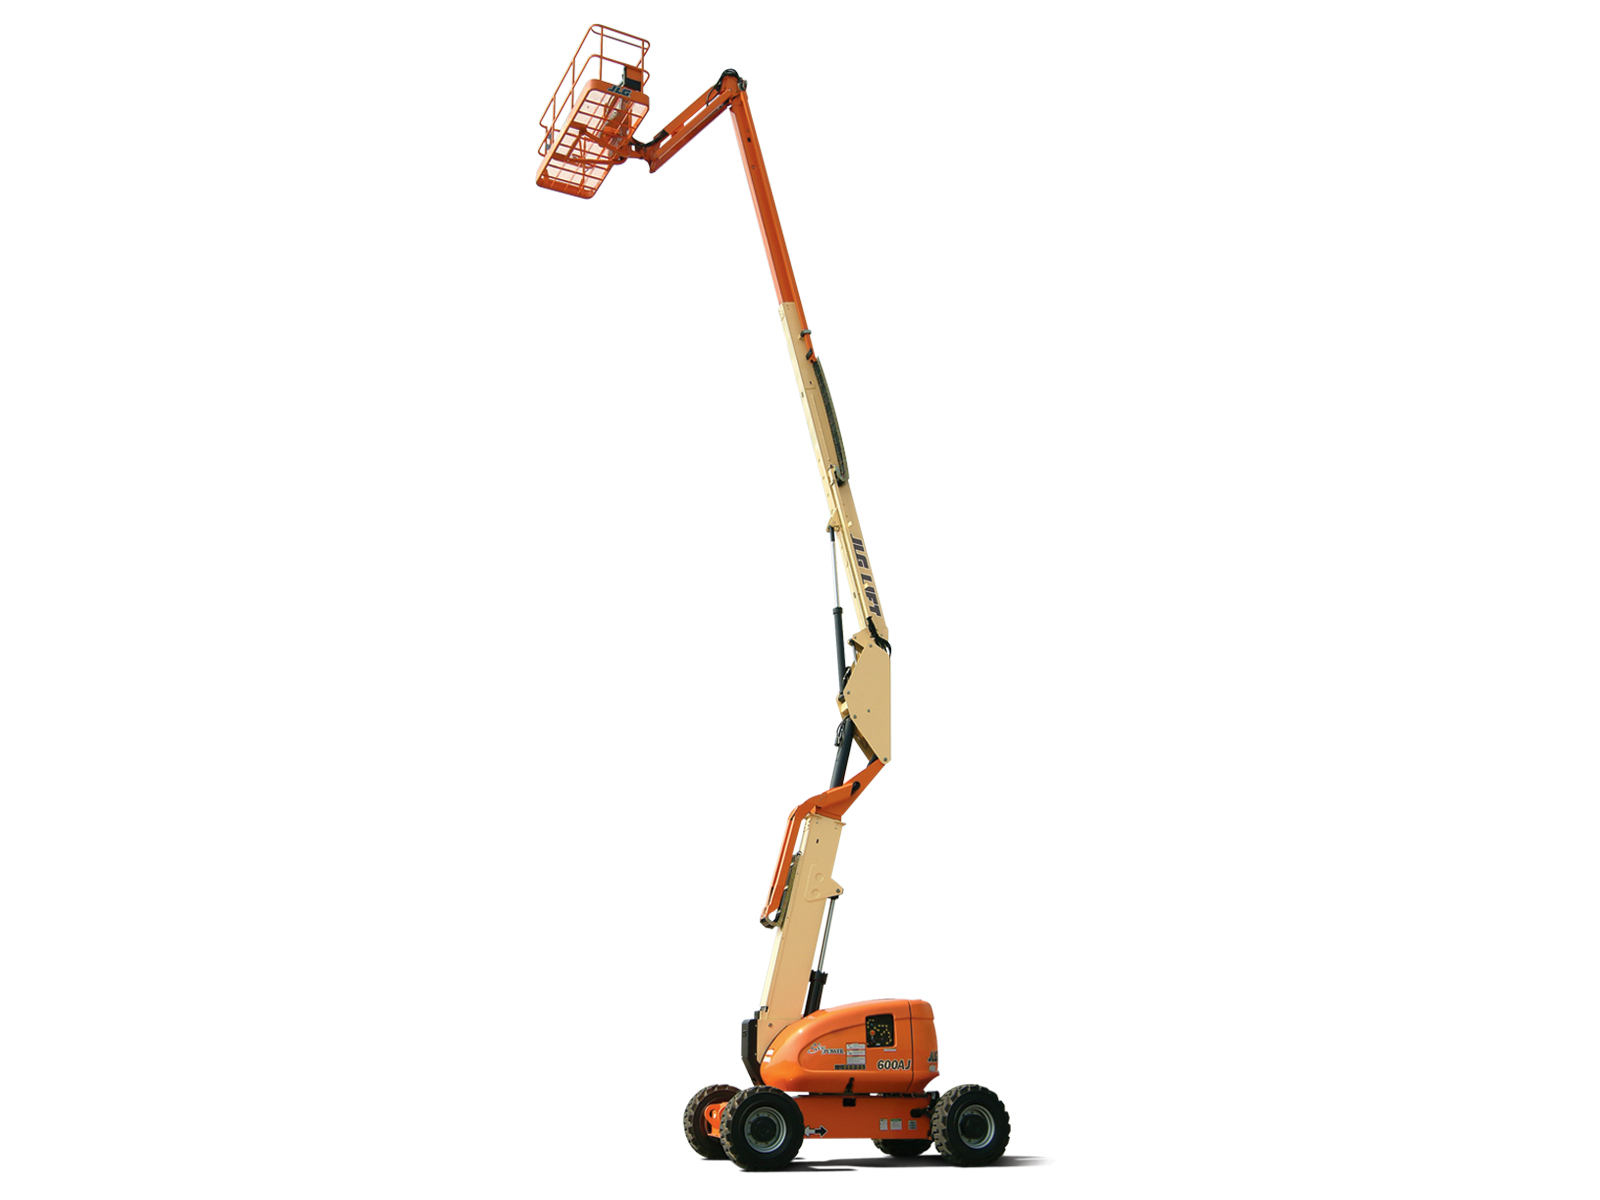 60' Articulating Boom Lift w/Jib